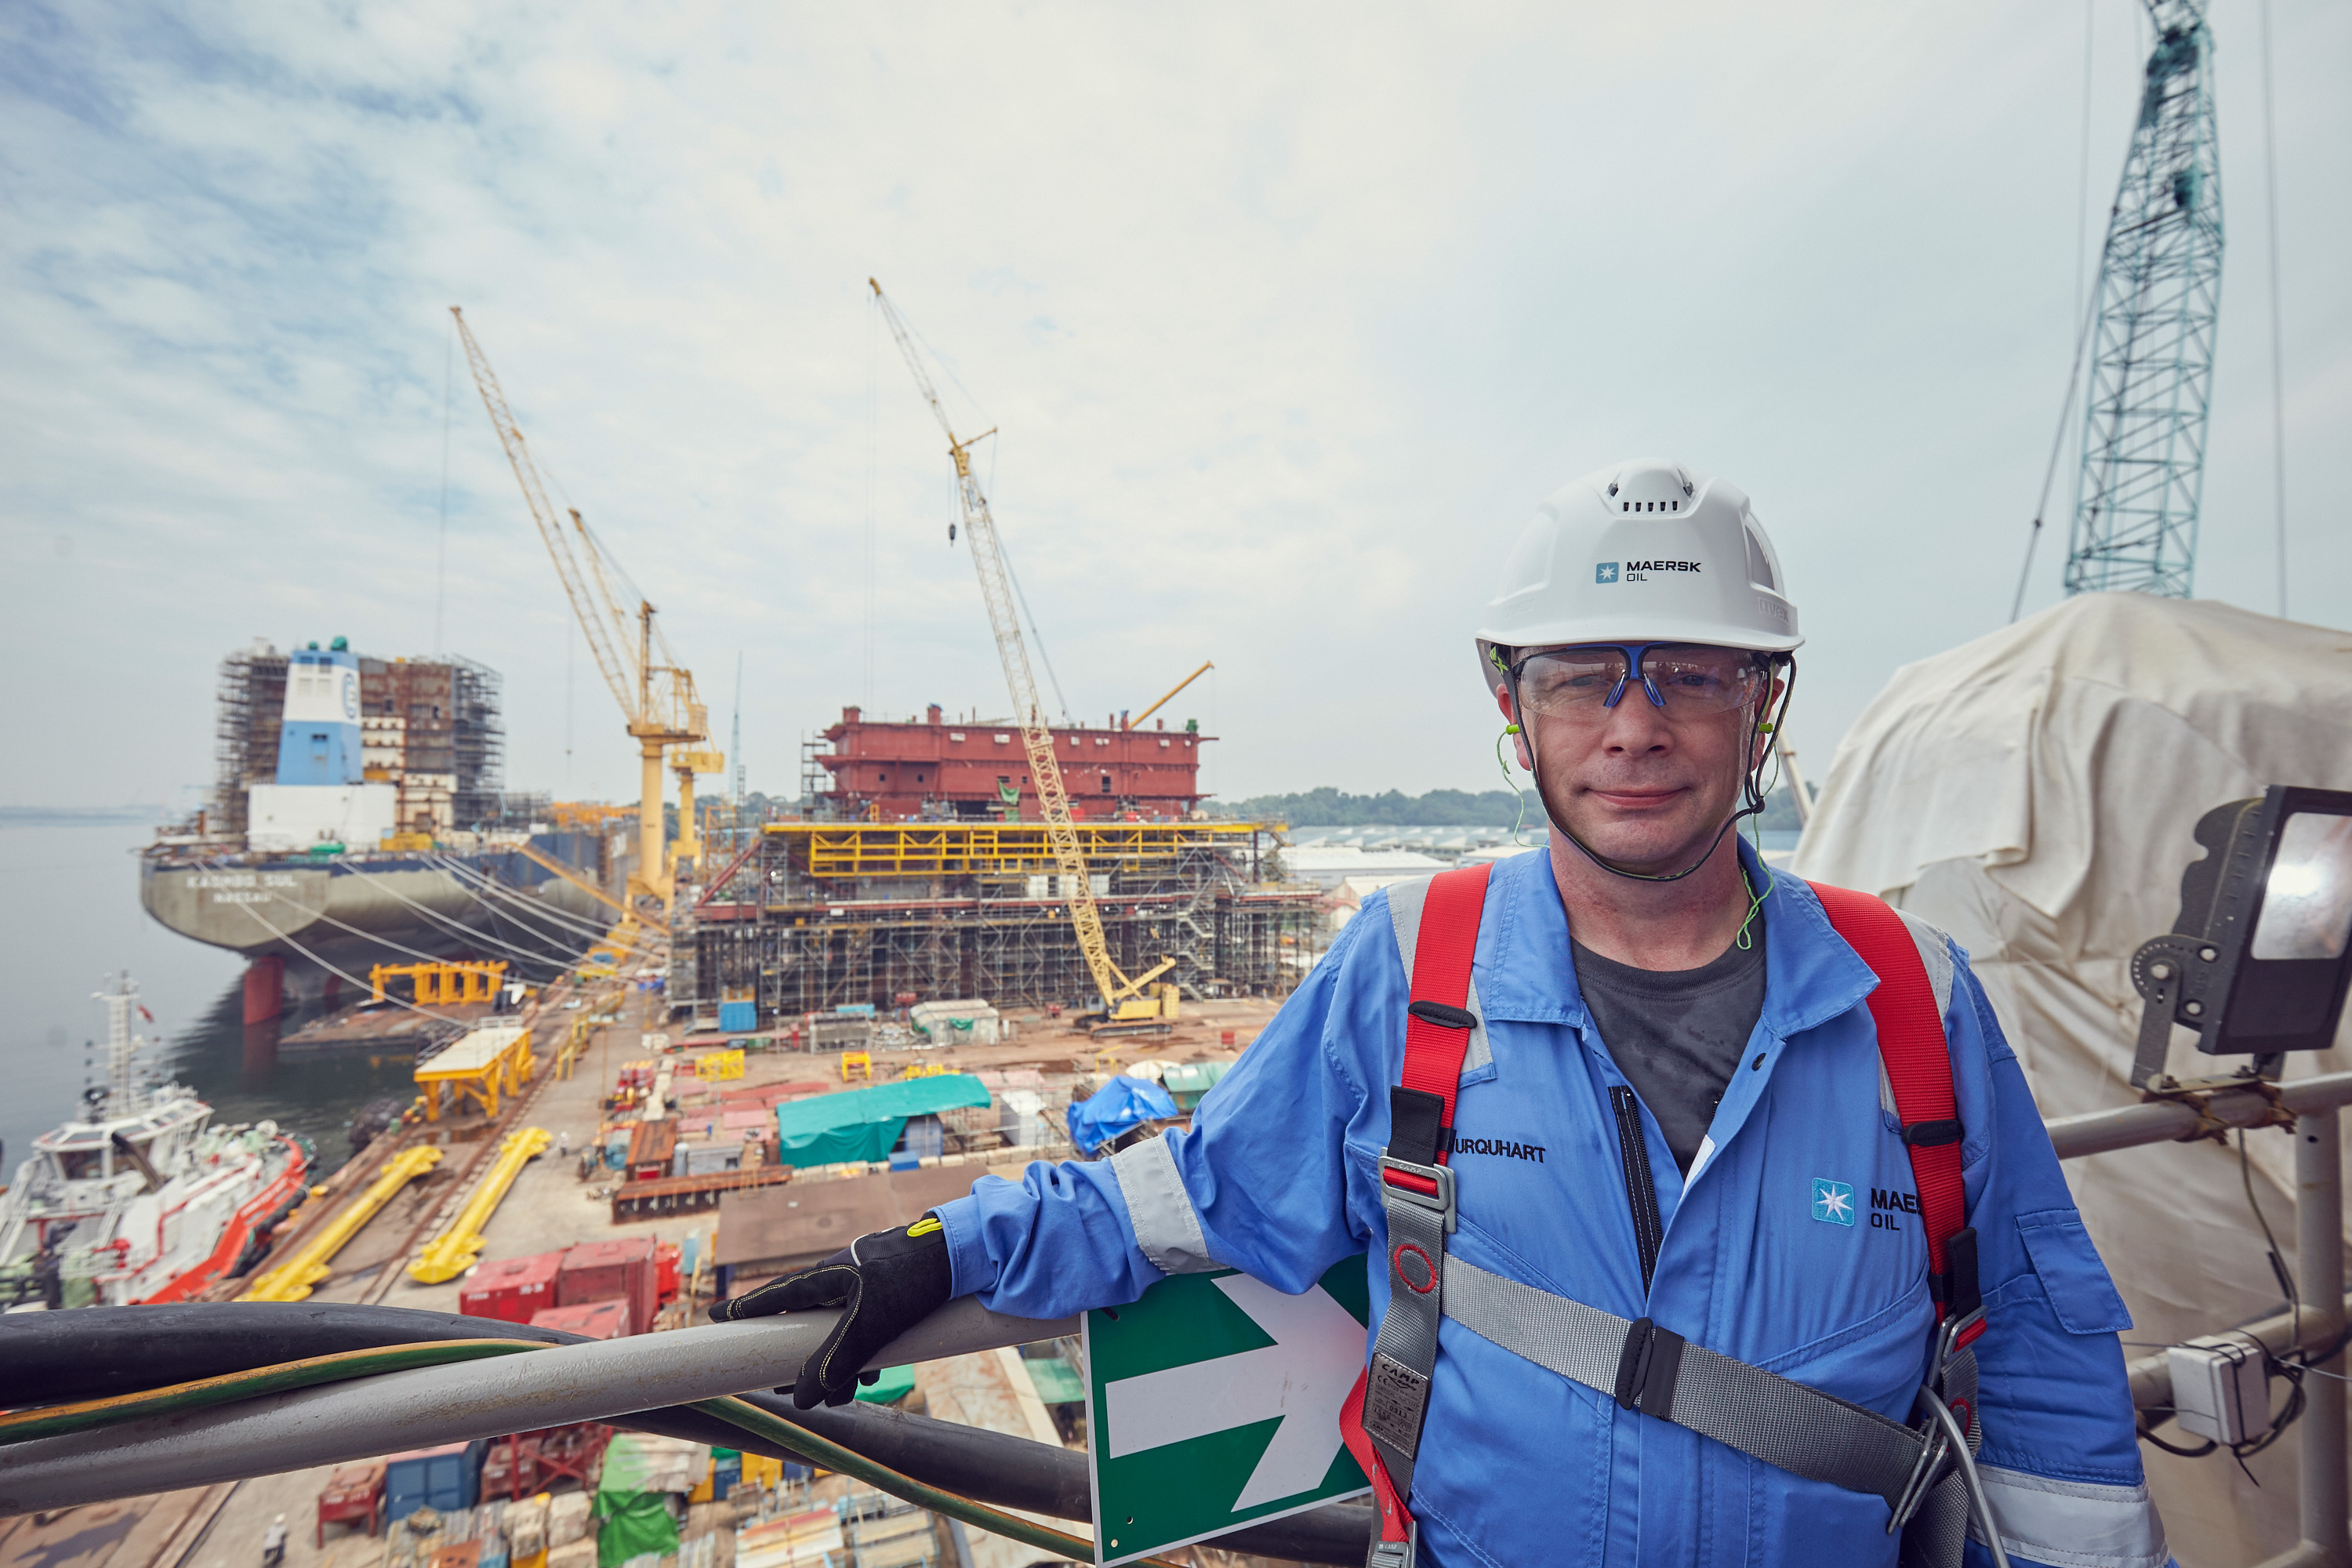 Martin Urquhart, Culzean project director for Maersk Oil, at the Admiralty Yard in Singapore. Photograph courtesy of Alfred NG Photography